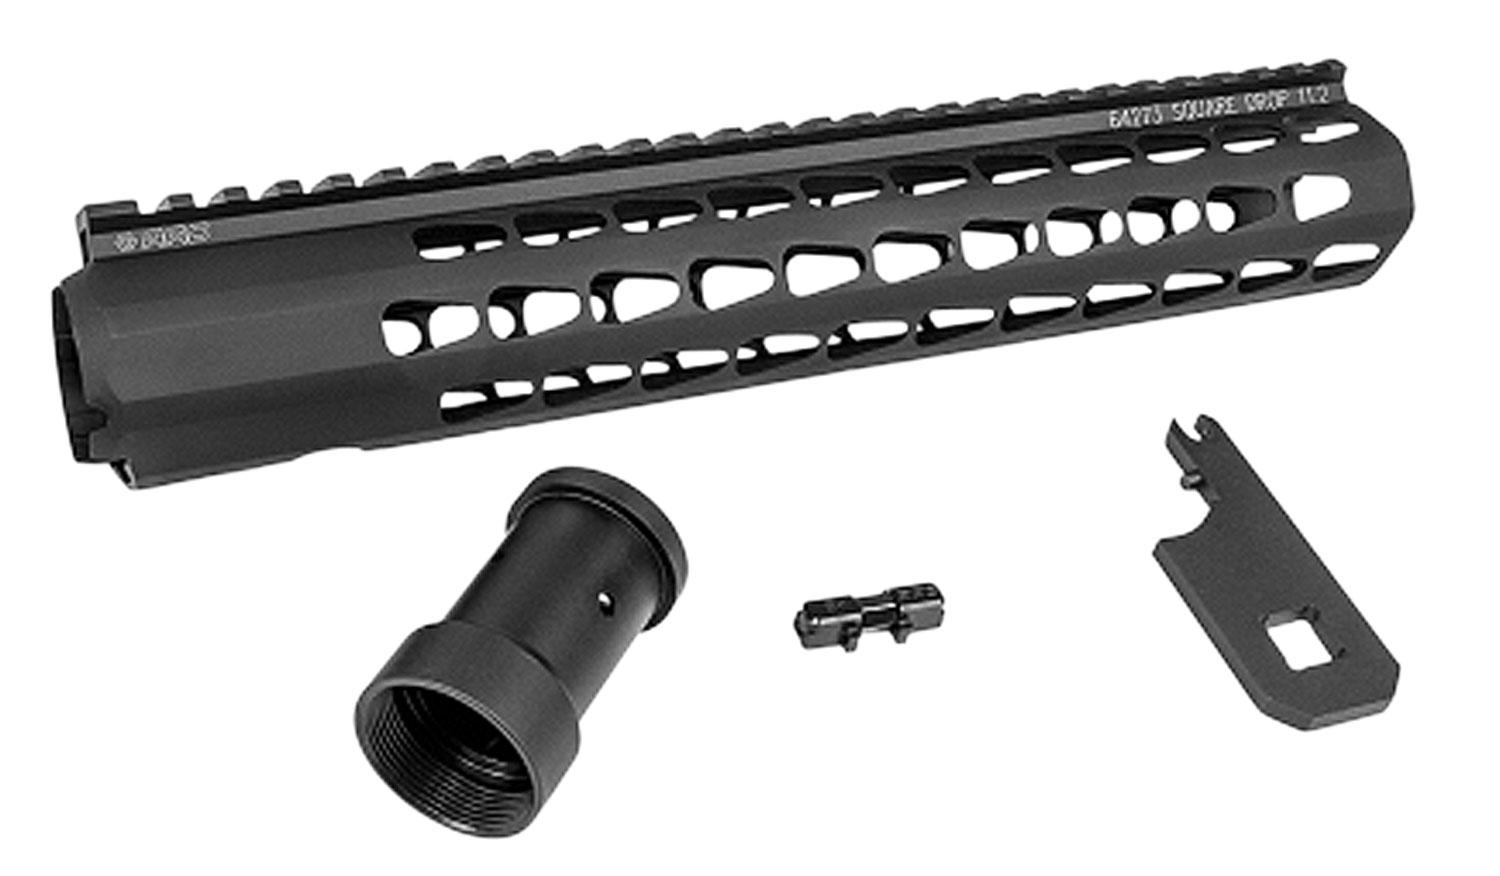 Advanced Armament 64273 Squaredrop Ar- 15 Aluminum Black/Anodized